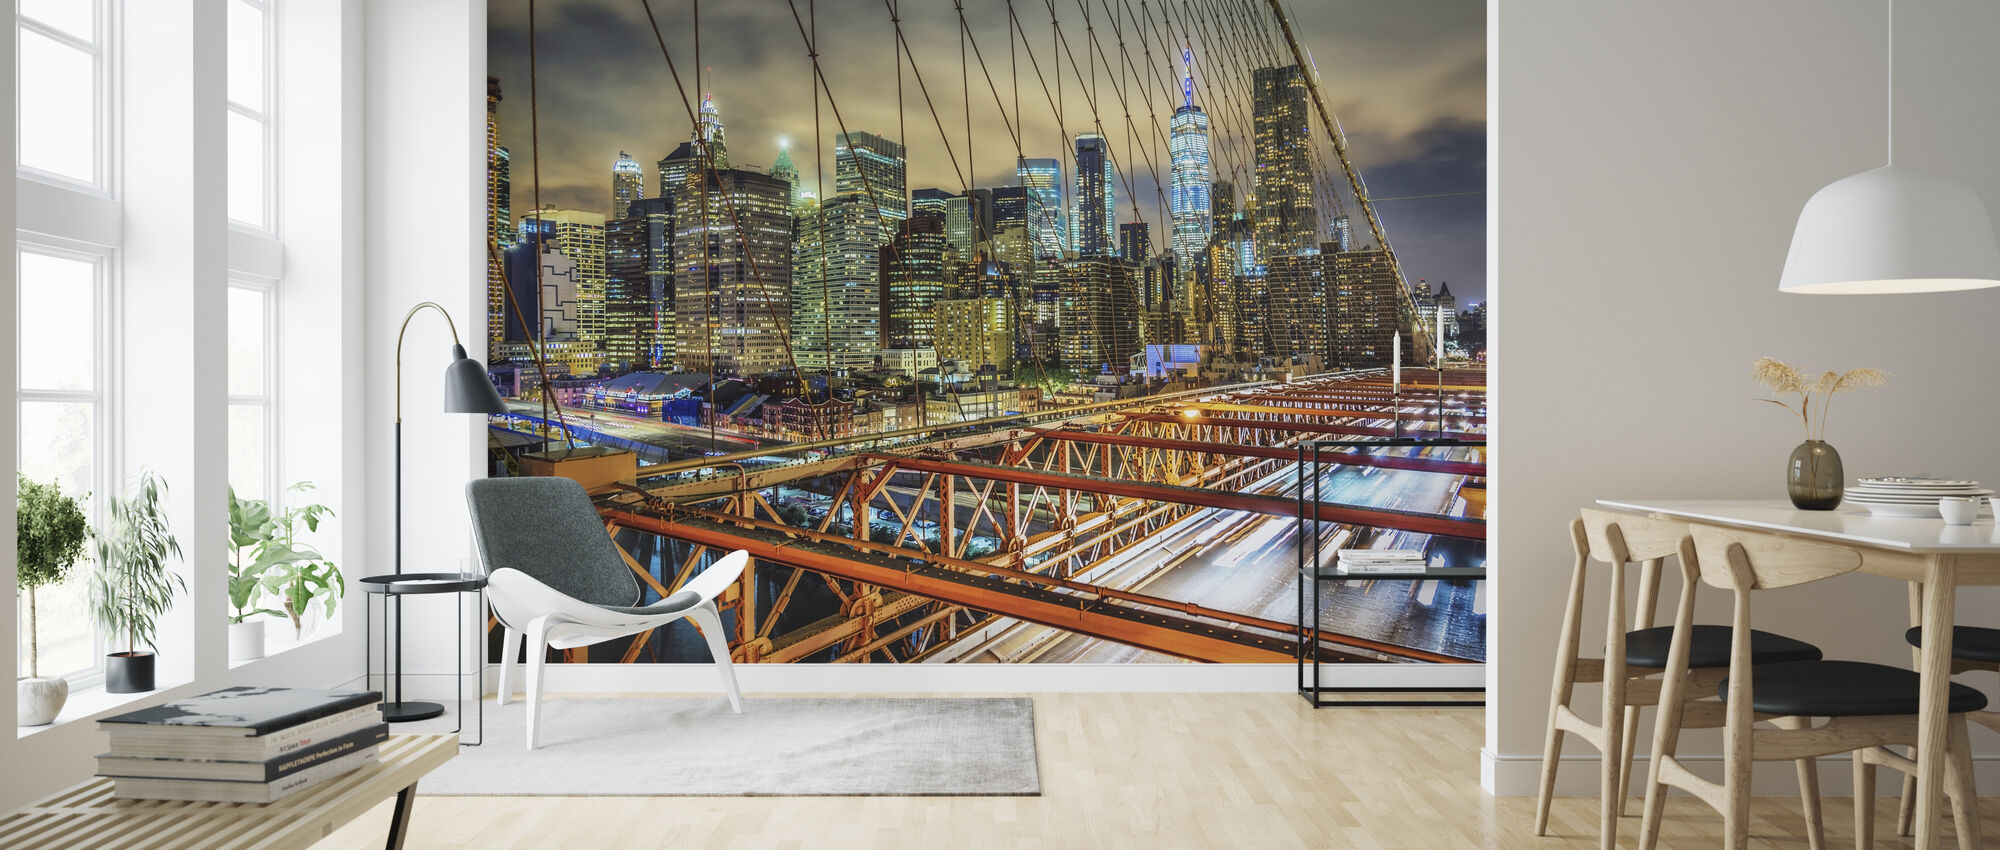 Top of Brooklyn Bridge - Wallpaper - Living Room